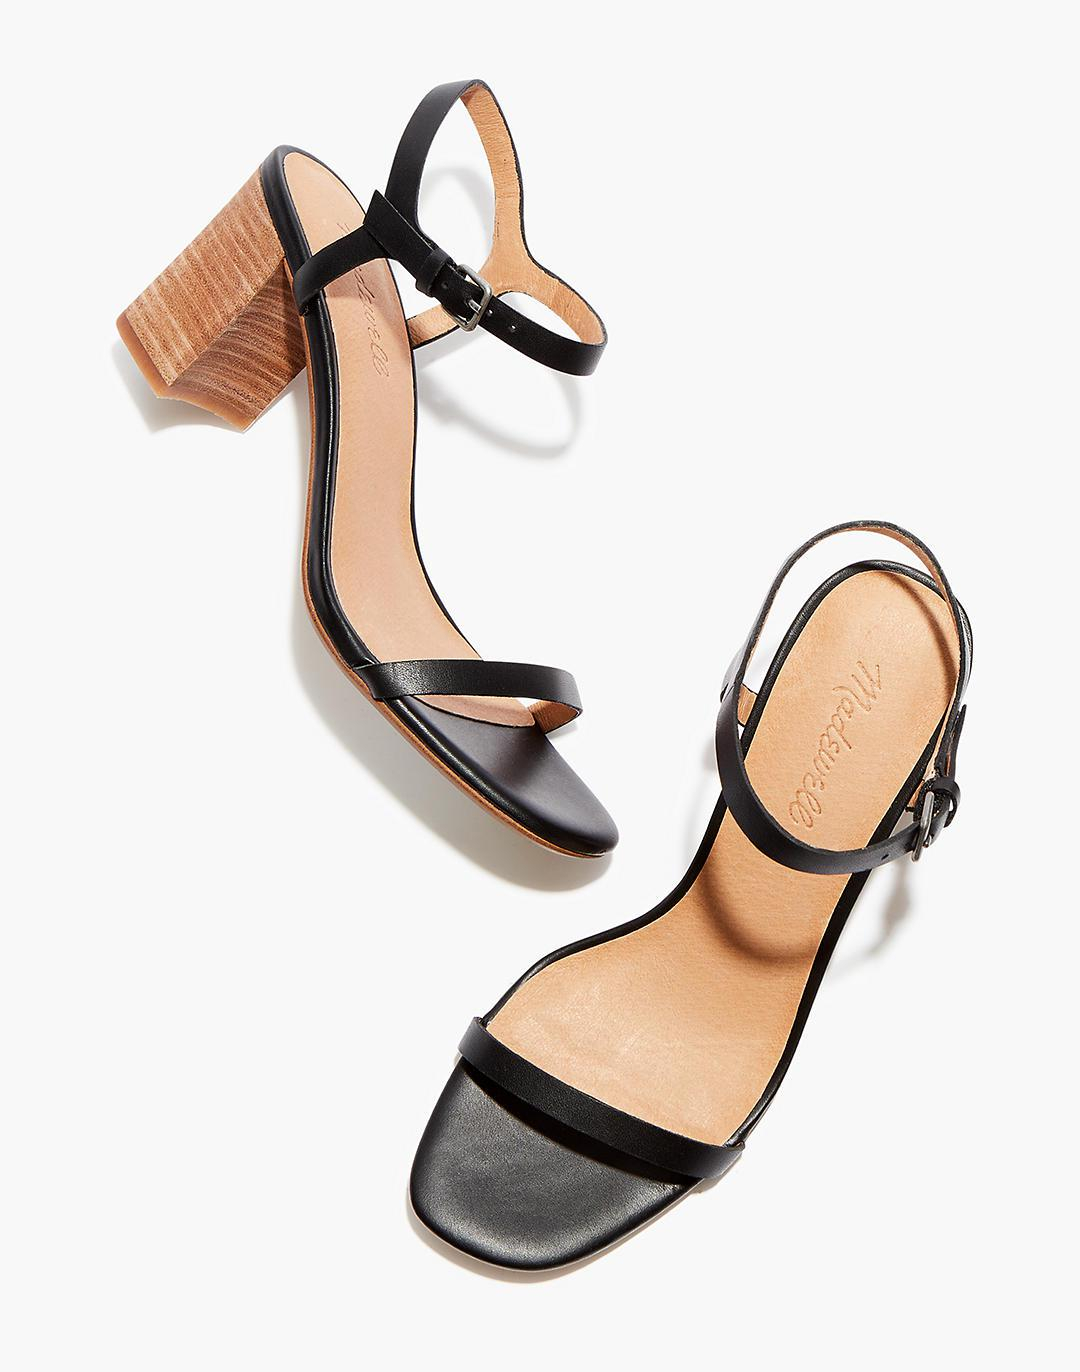 The Holly Ankle-Strap Sandal in Leather